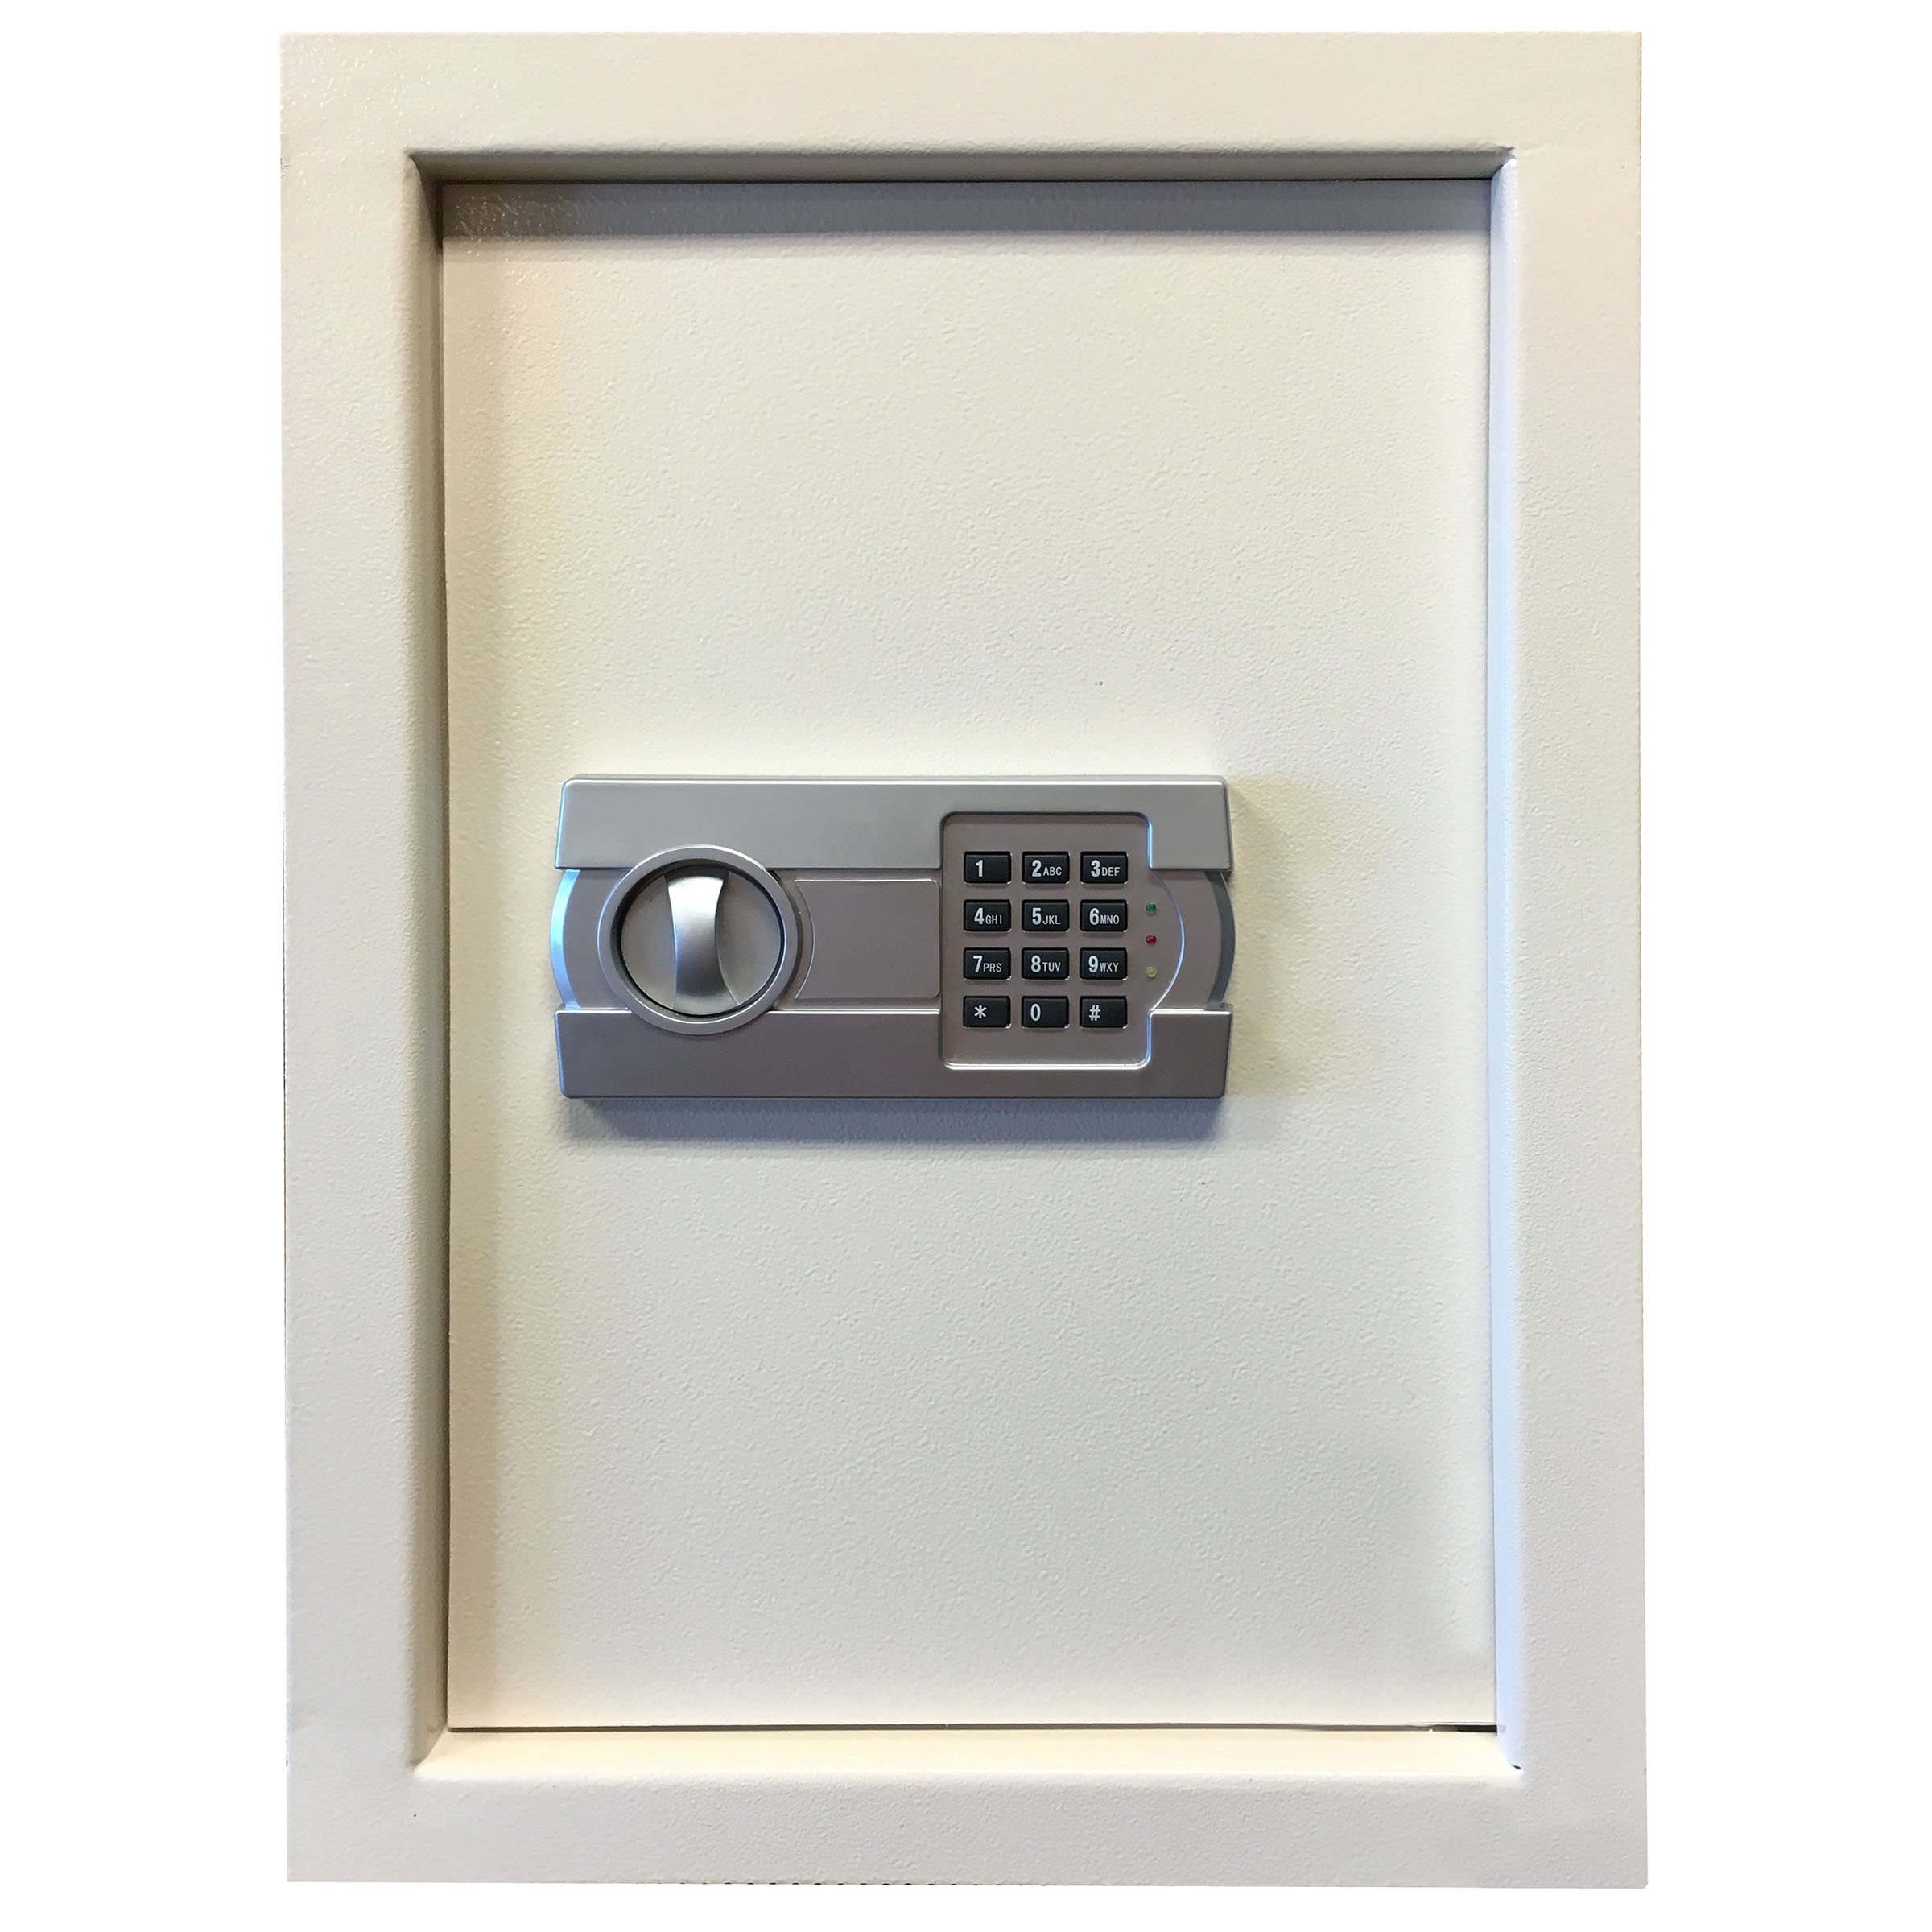 Sportsman Series WLSFB Wall Safe with Electronic Lock, Beige, by Sportsman Series